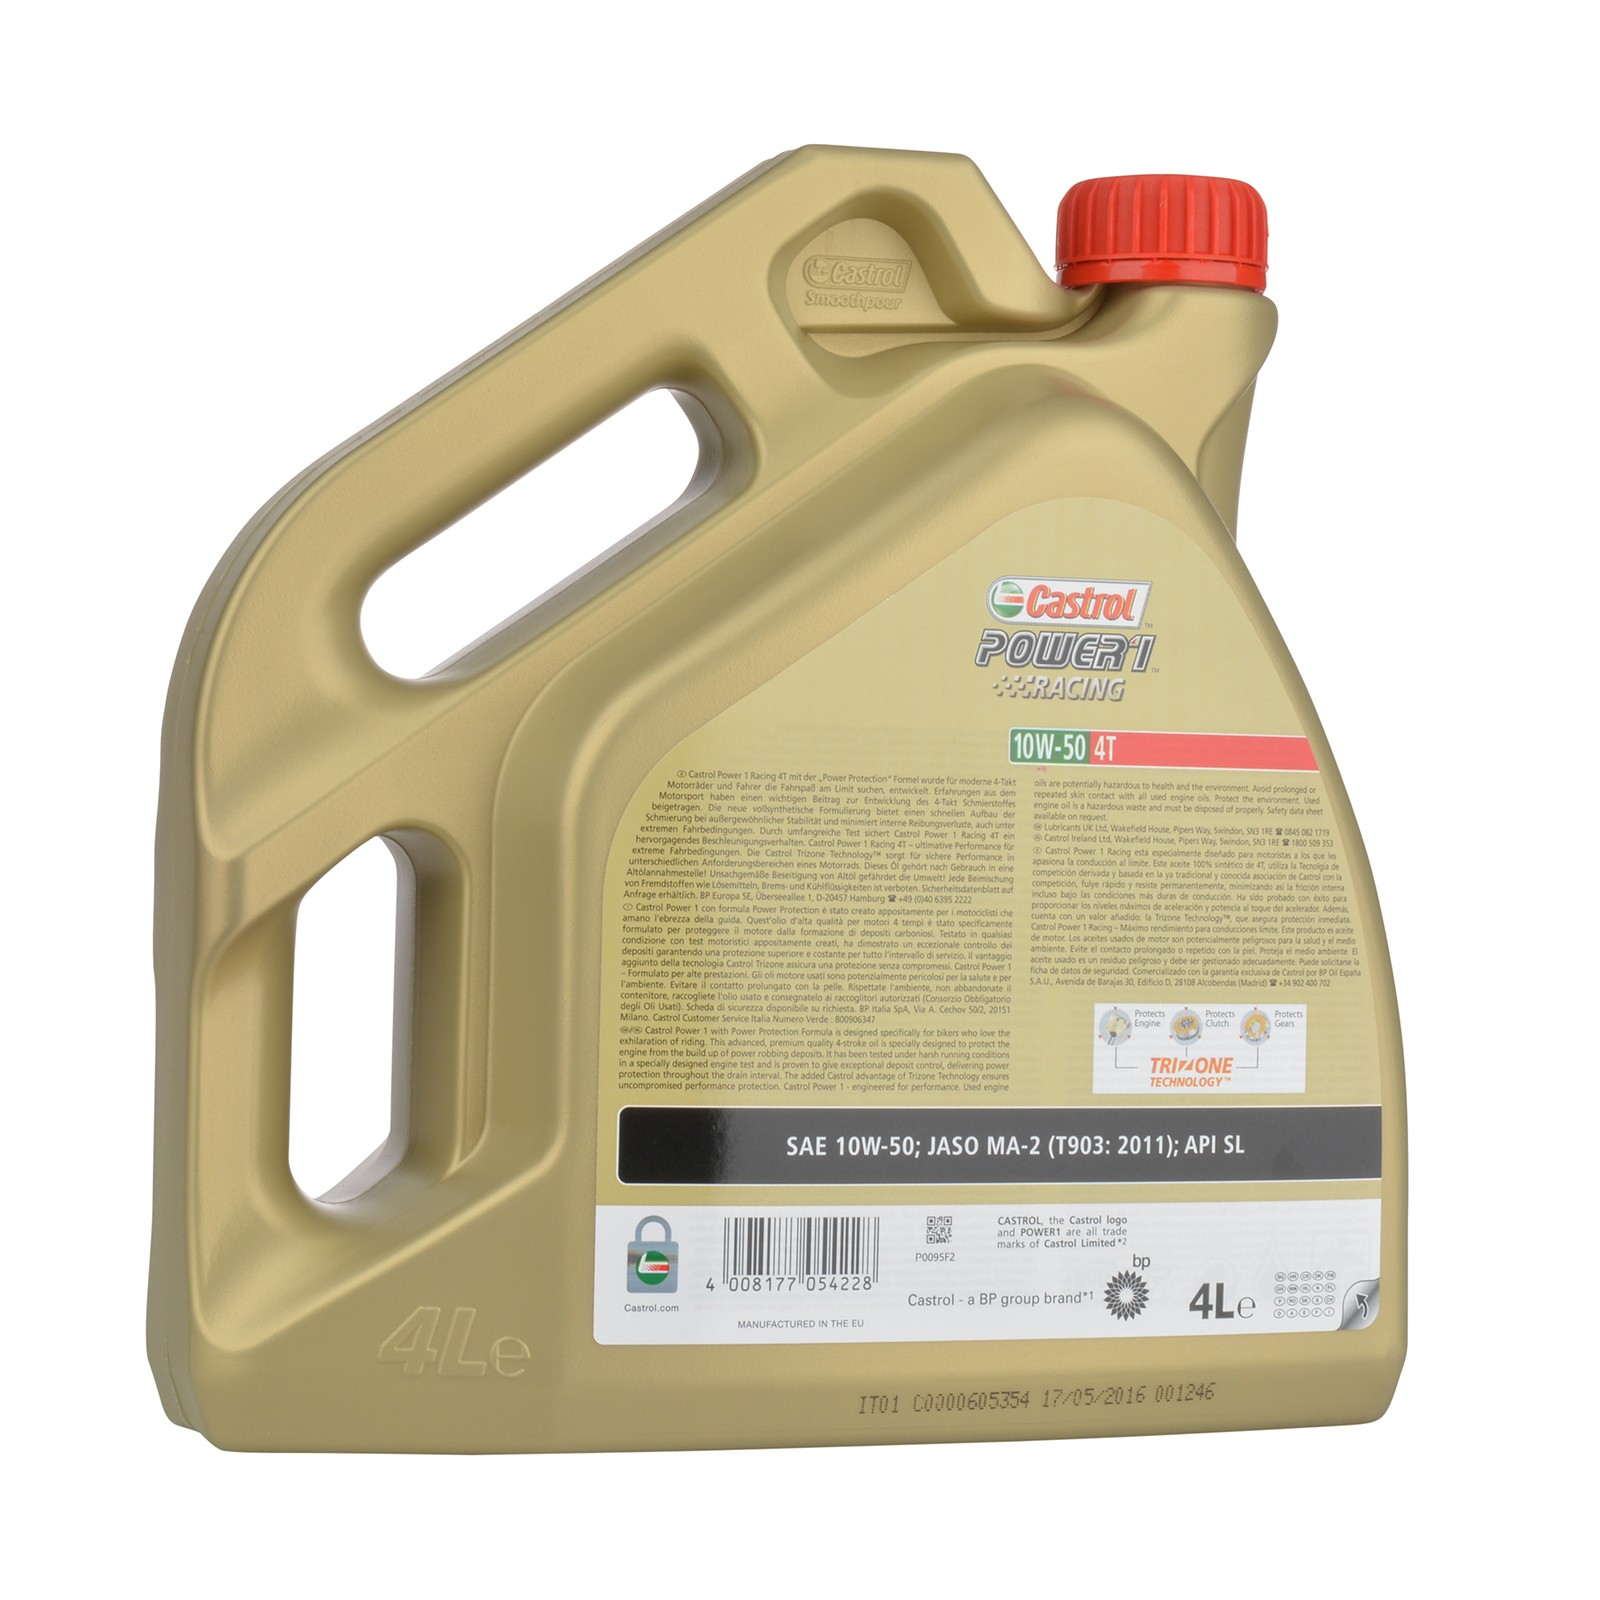 Castrol Power 1 Racing 4T 10W-50 - 4 Liter – Bild 2